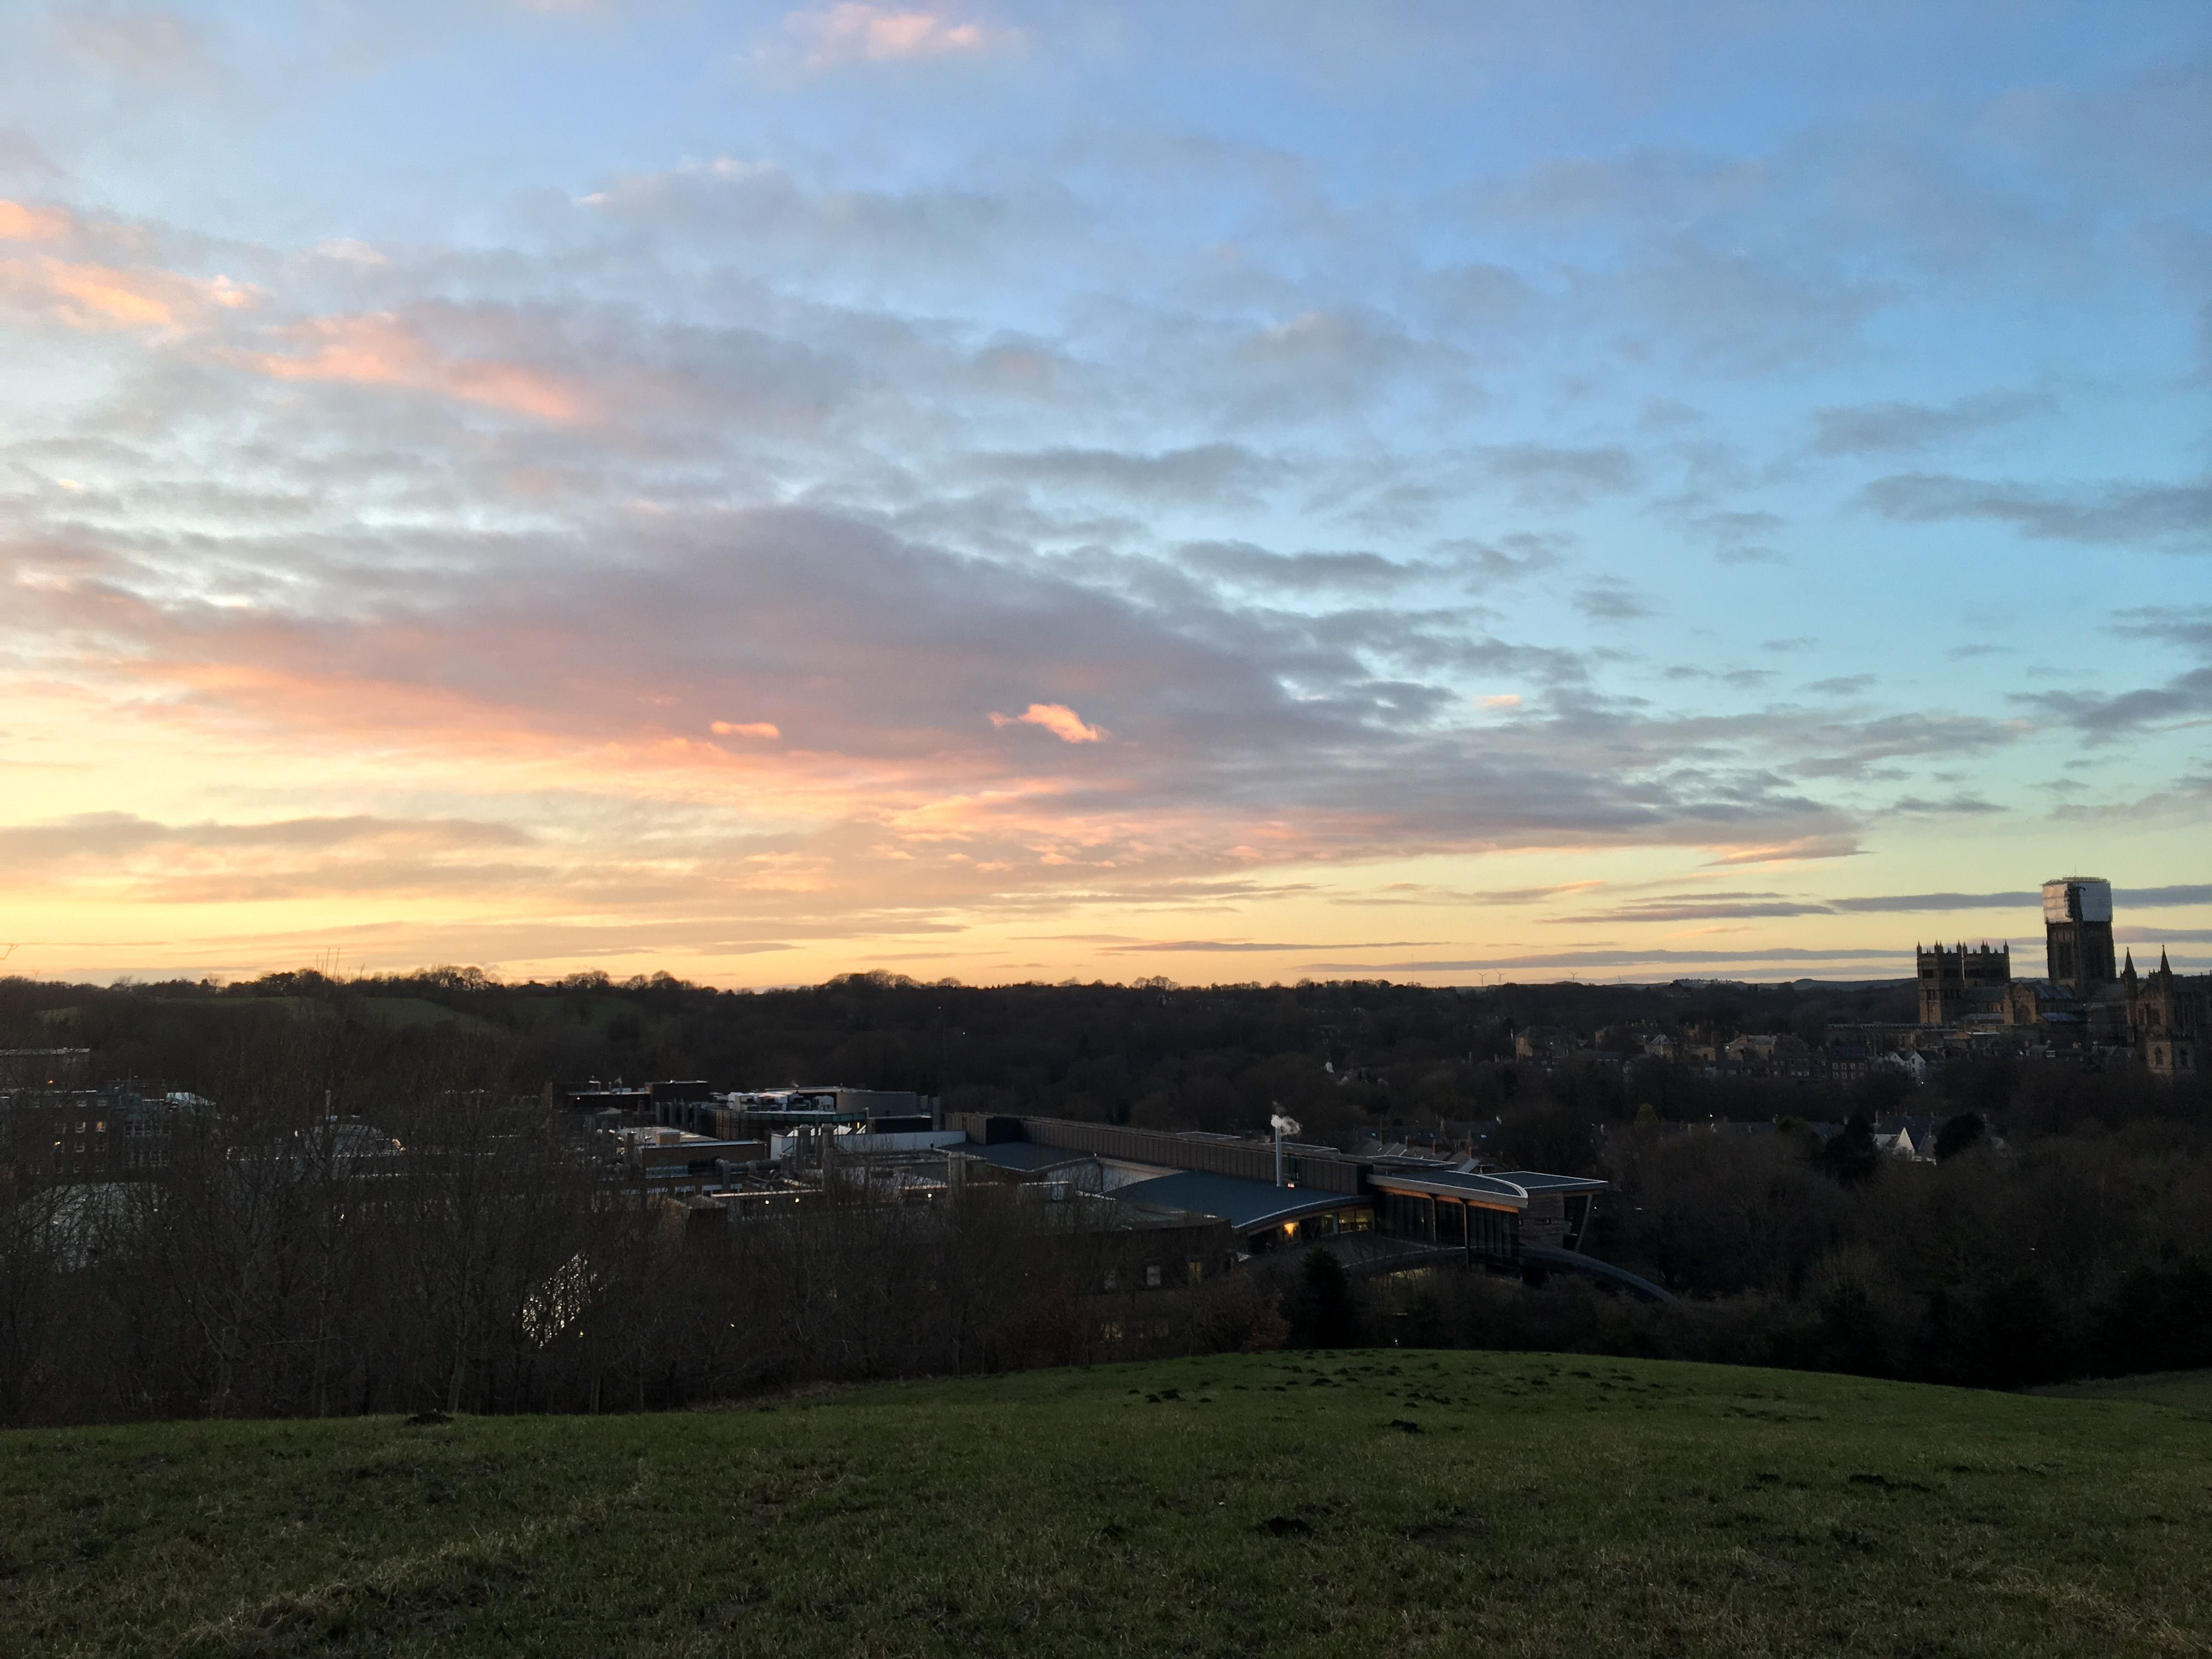 A comprehensive guide to the best places to watch the sunset in Durham